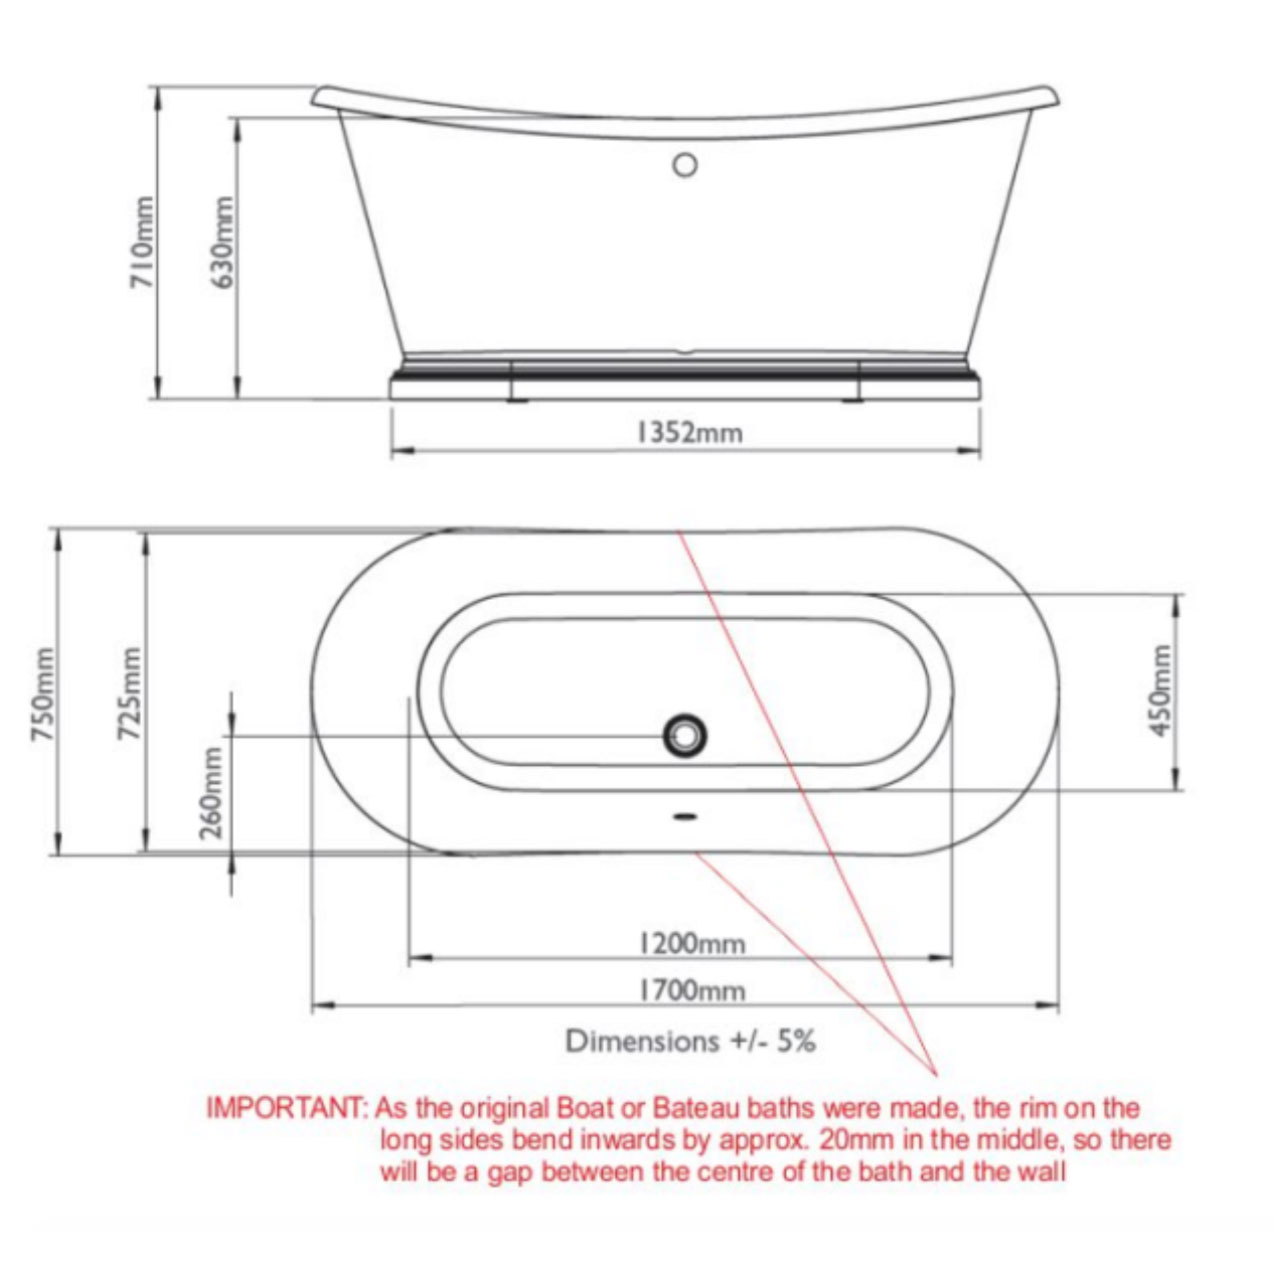 Bathwaters 1700 Boat Bath Technical